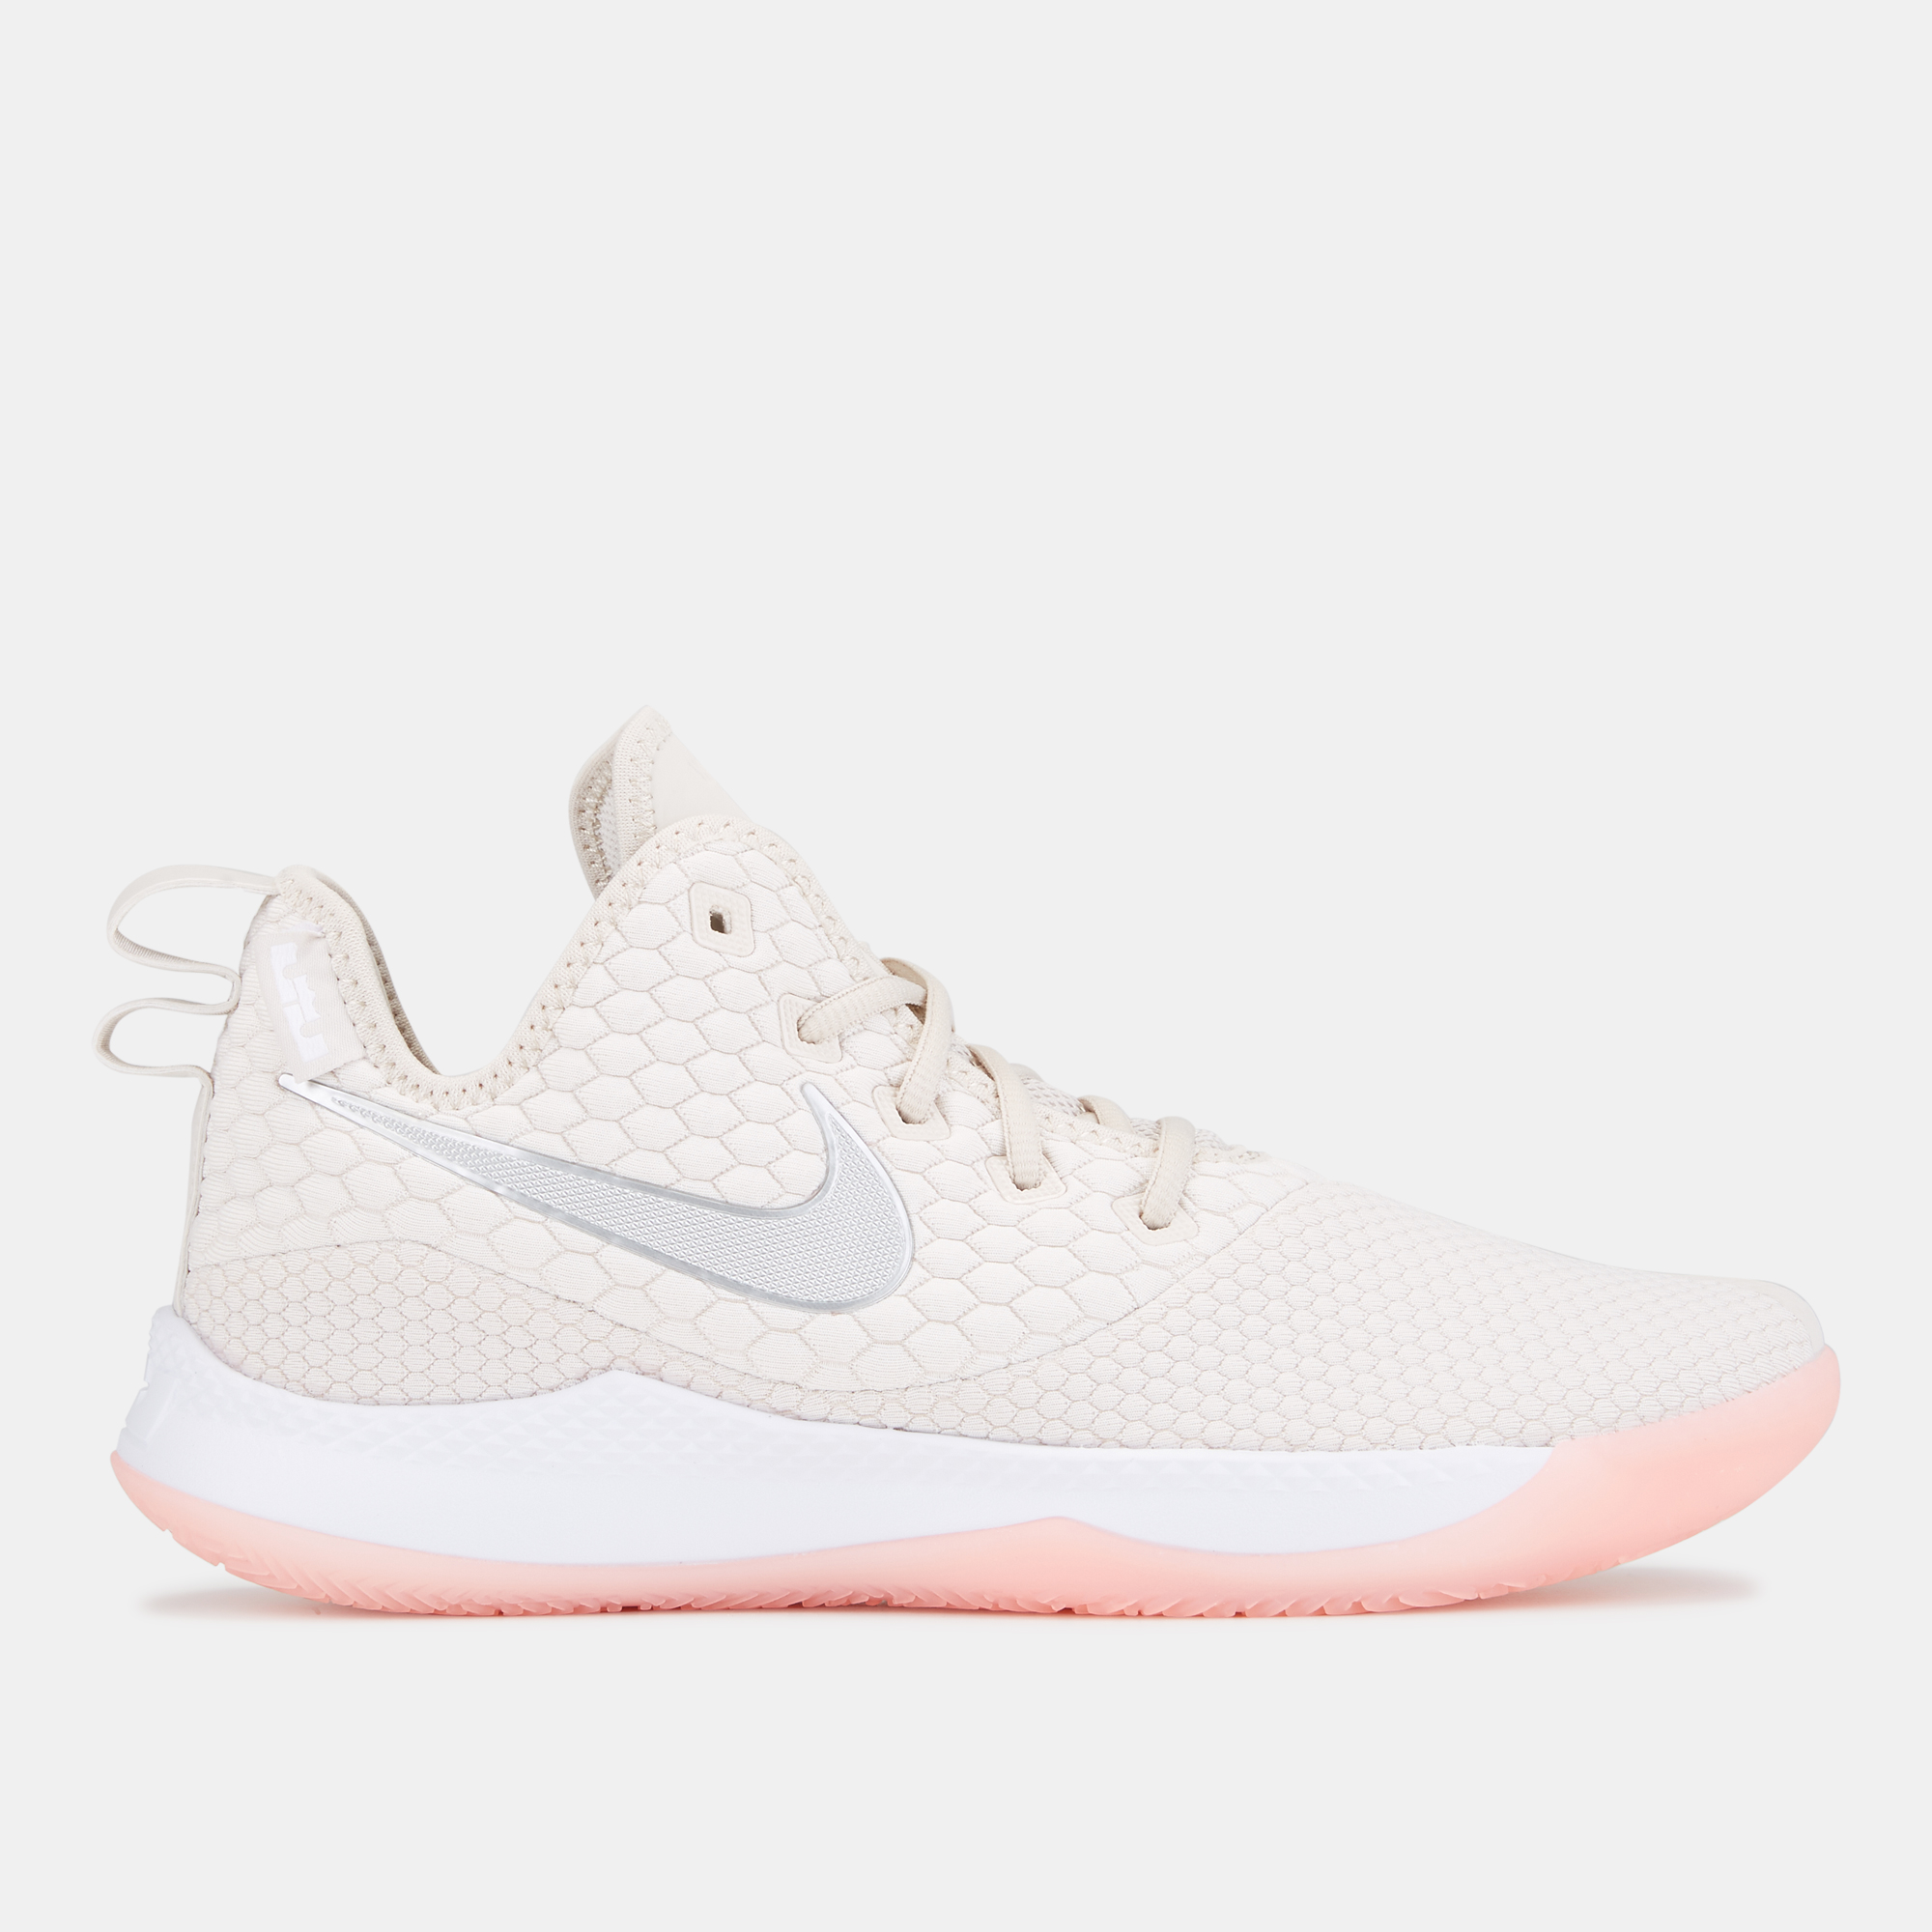 the best attitude a258b c90e1 2effe 4fb81  official store nike lebron witness 3 shoe sneakers shoes  sports fashion sports sss afb5c 6224d